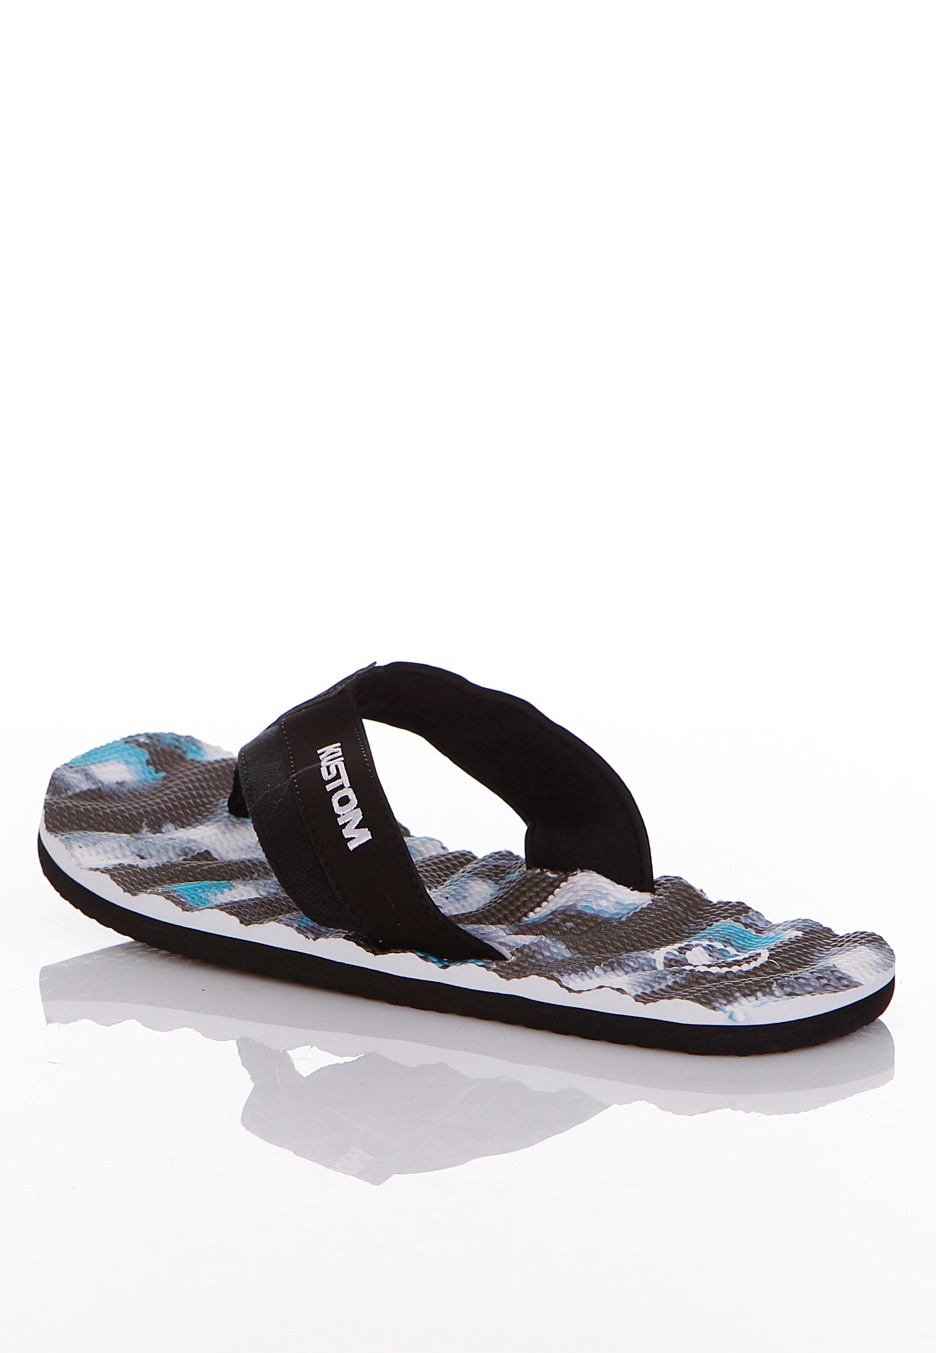 9c37c3da452a32 Kustom - Hummer III Water Check - Sandals - Impericon.com DE